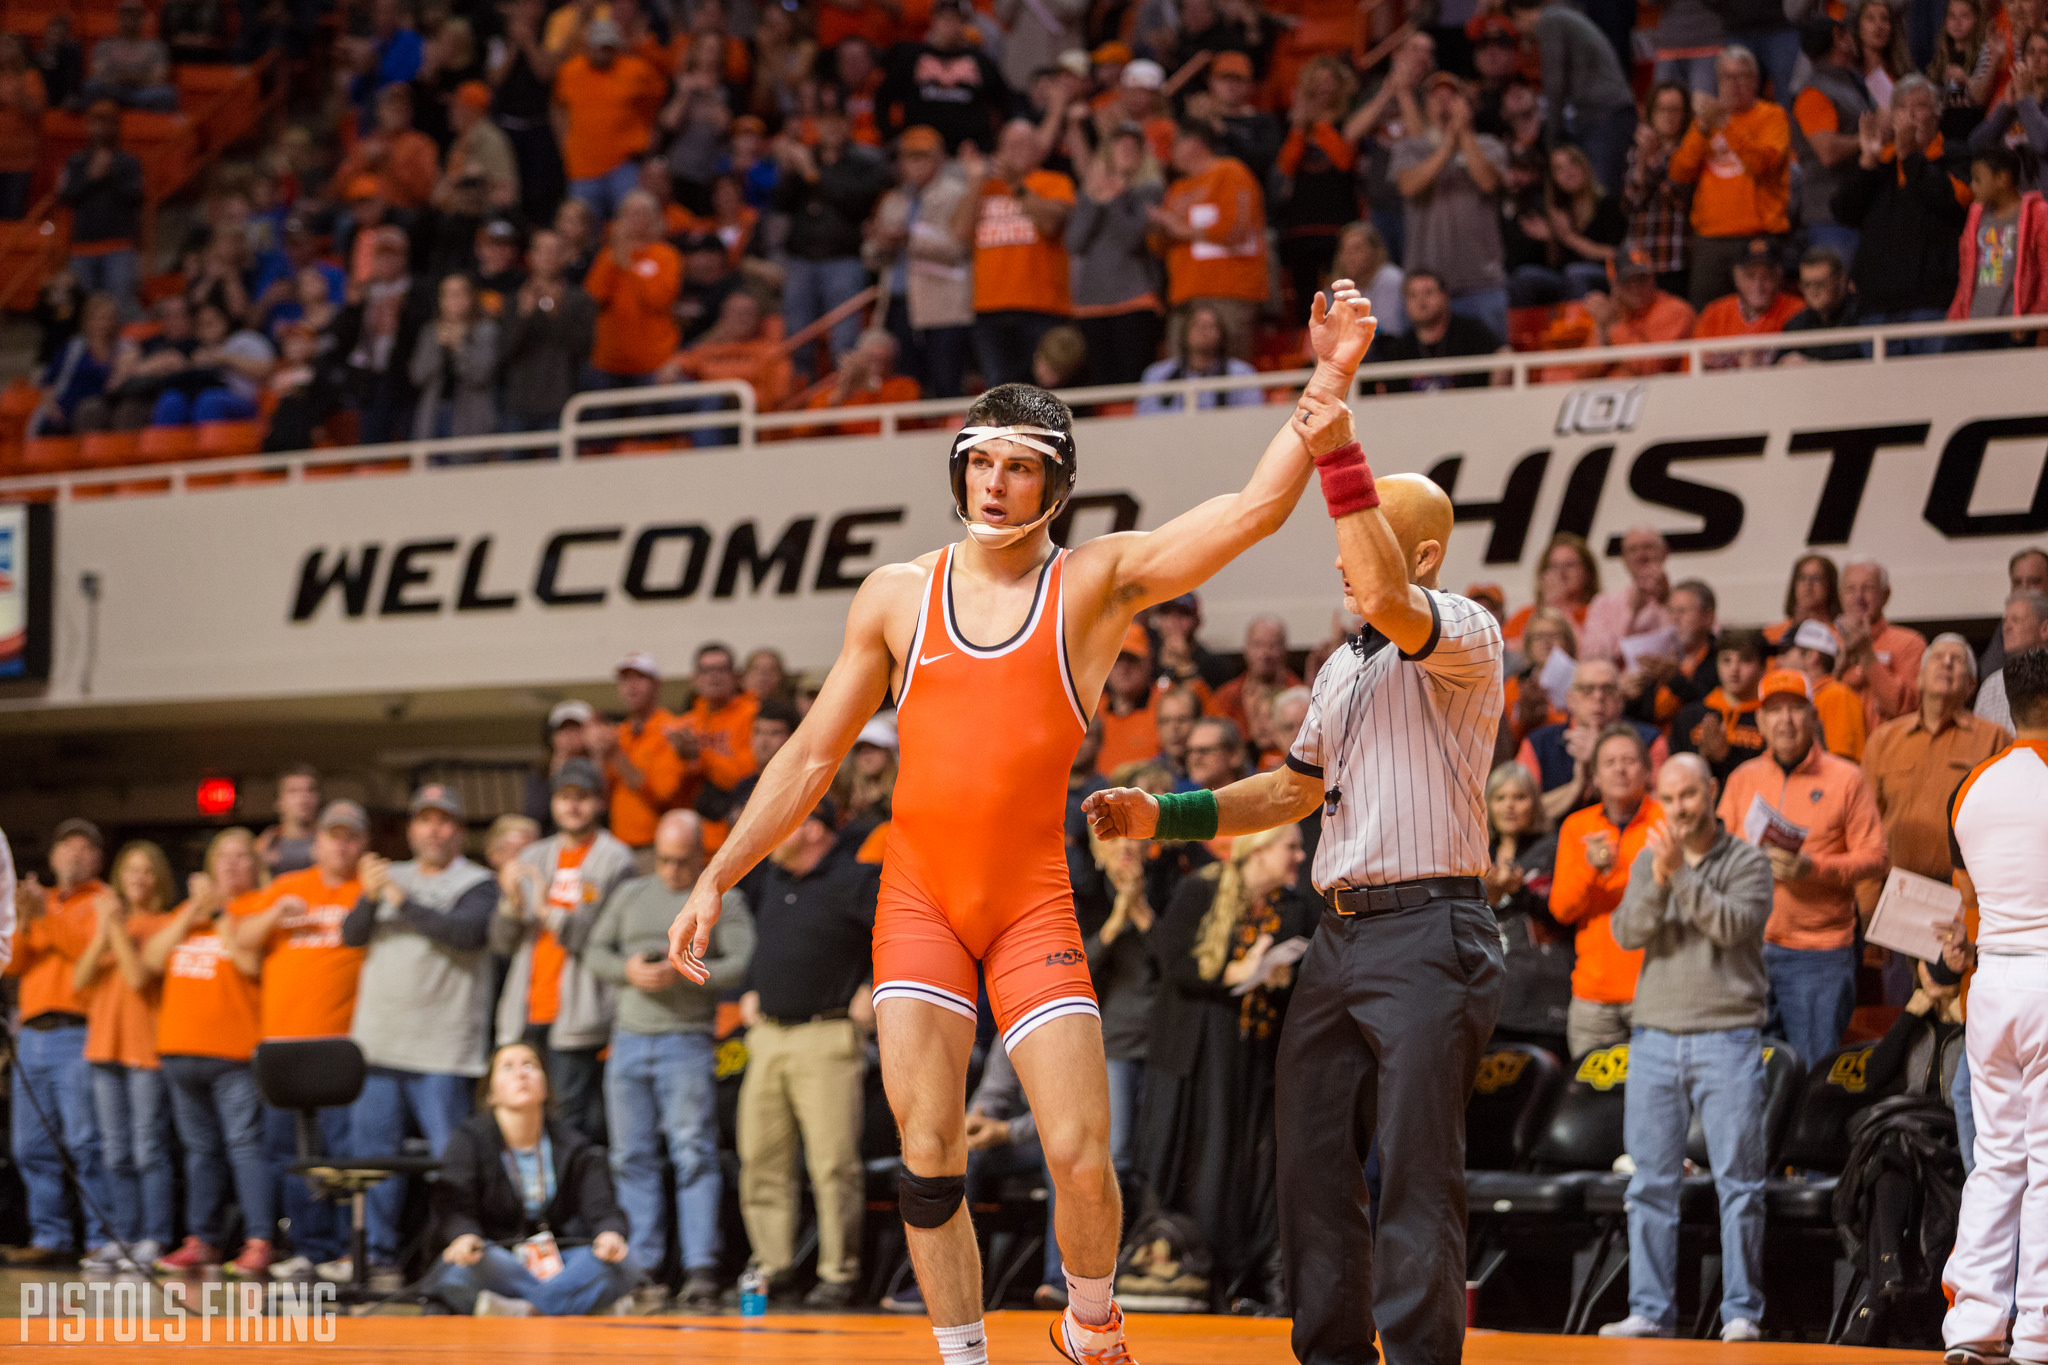 Wrestling Resume Why Every Match Matters A Look At Resume Building In Ncaa